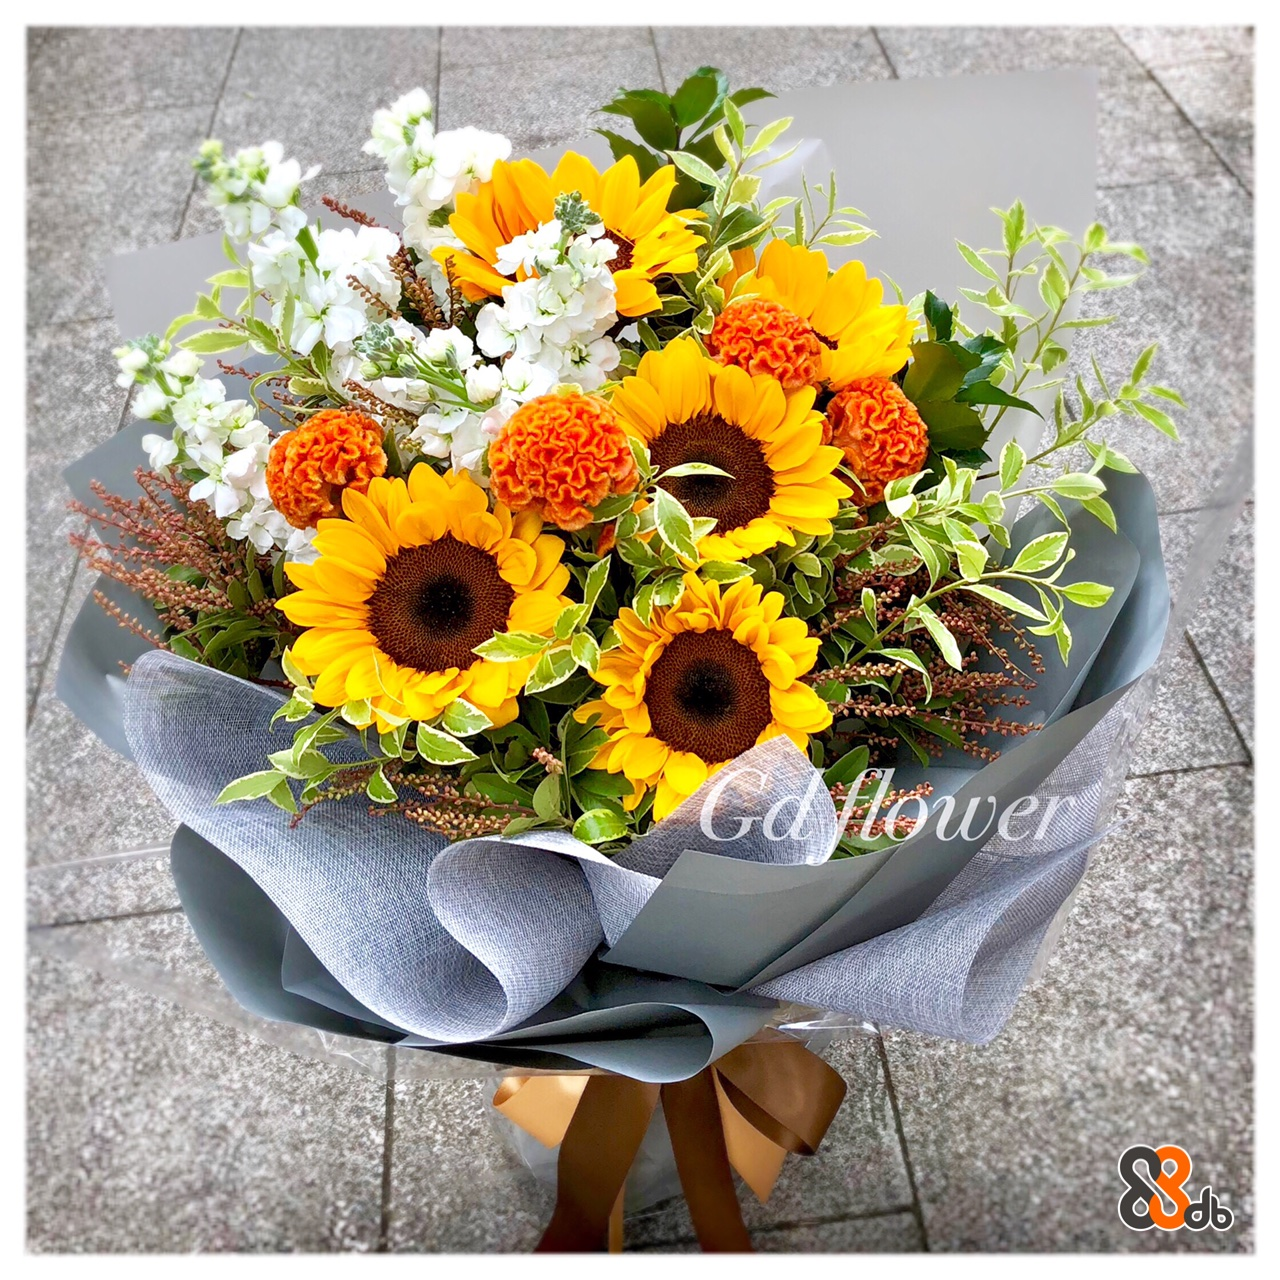 flower,flower bouquet,sunflower,yellow,floristry